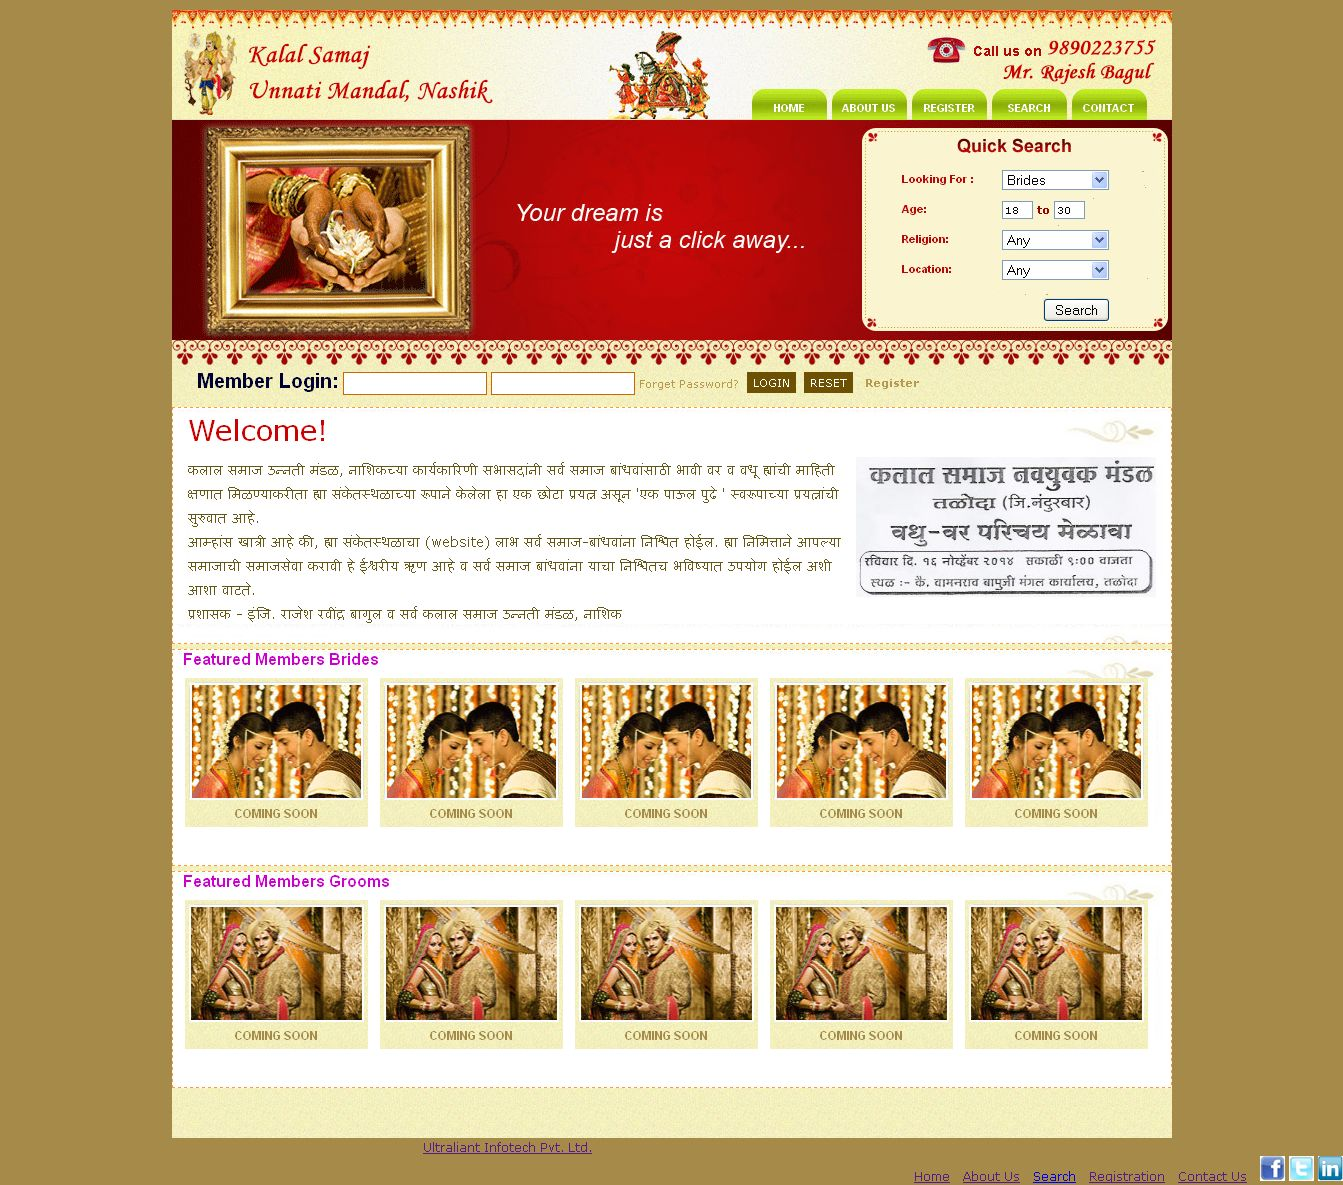 Matrimonial web portal for Kalal Samaj.